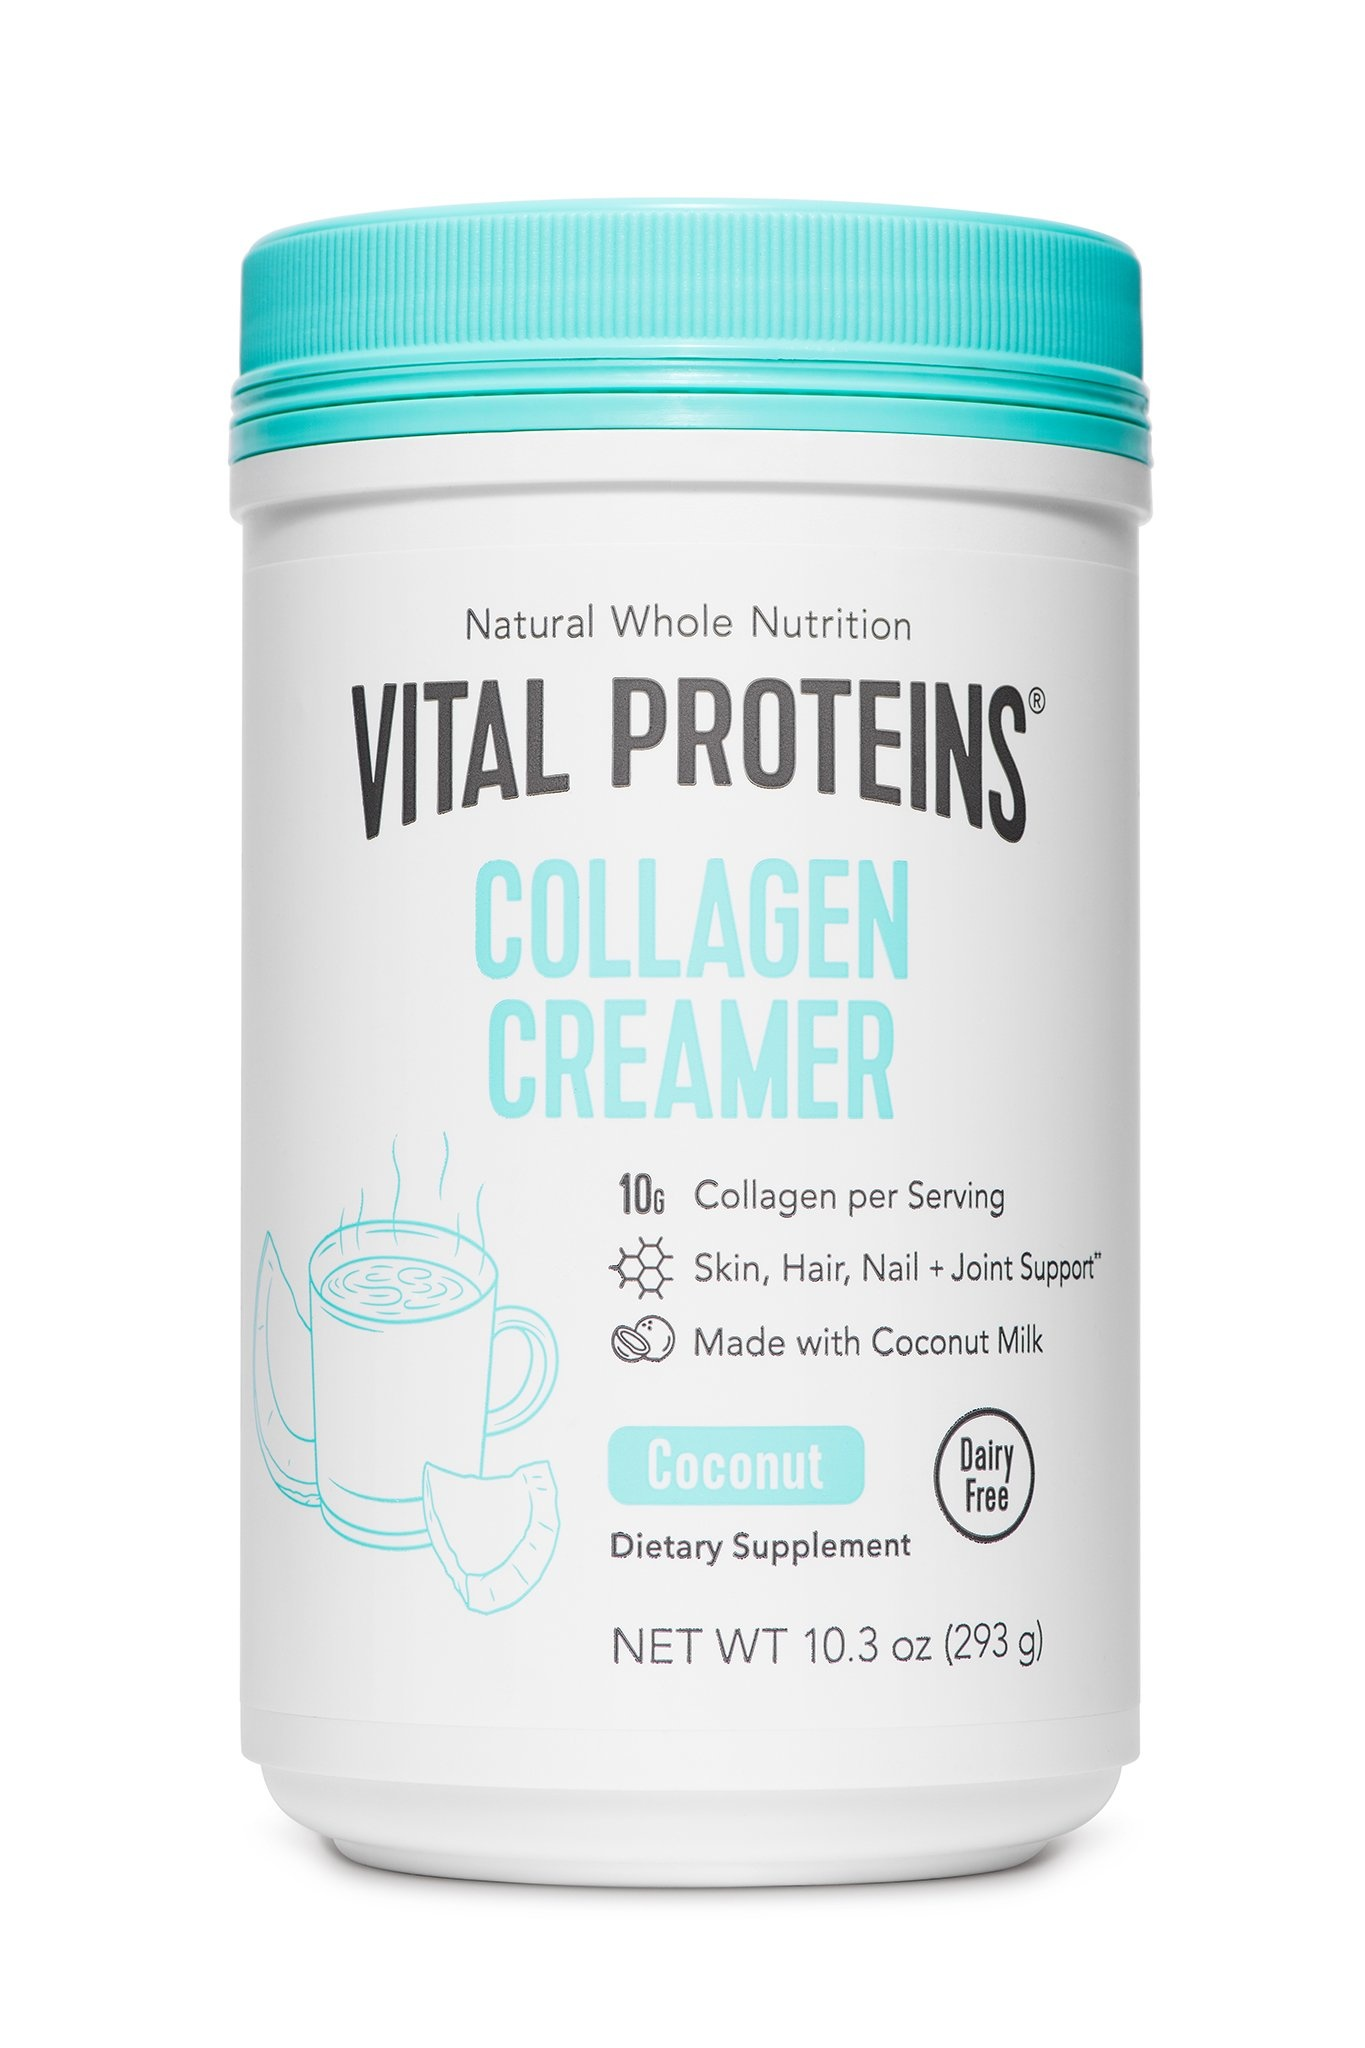 Buy Vital Proteins Collagen Creamer in Canada at Wellness ...